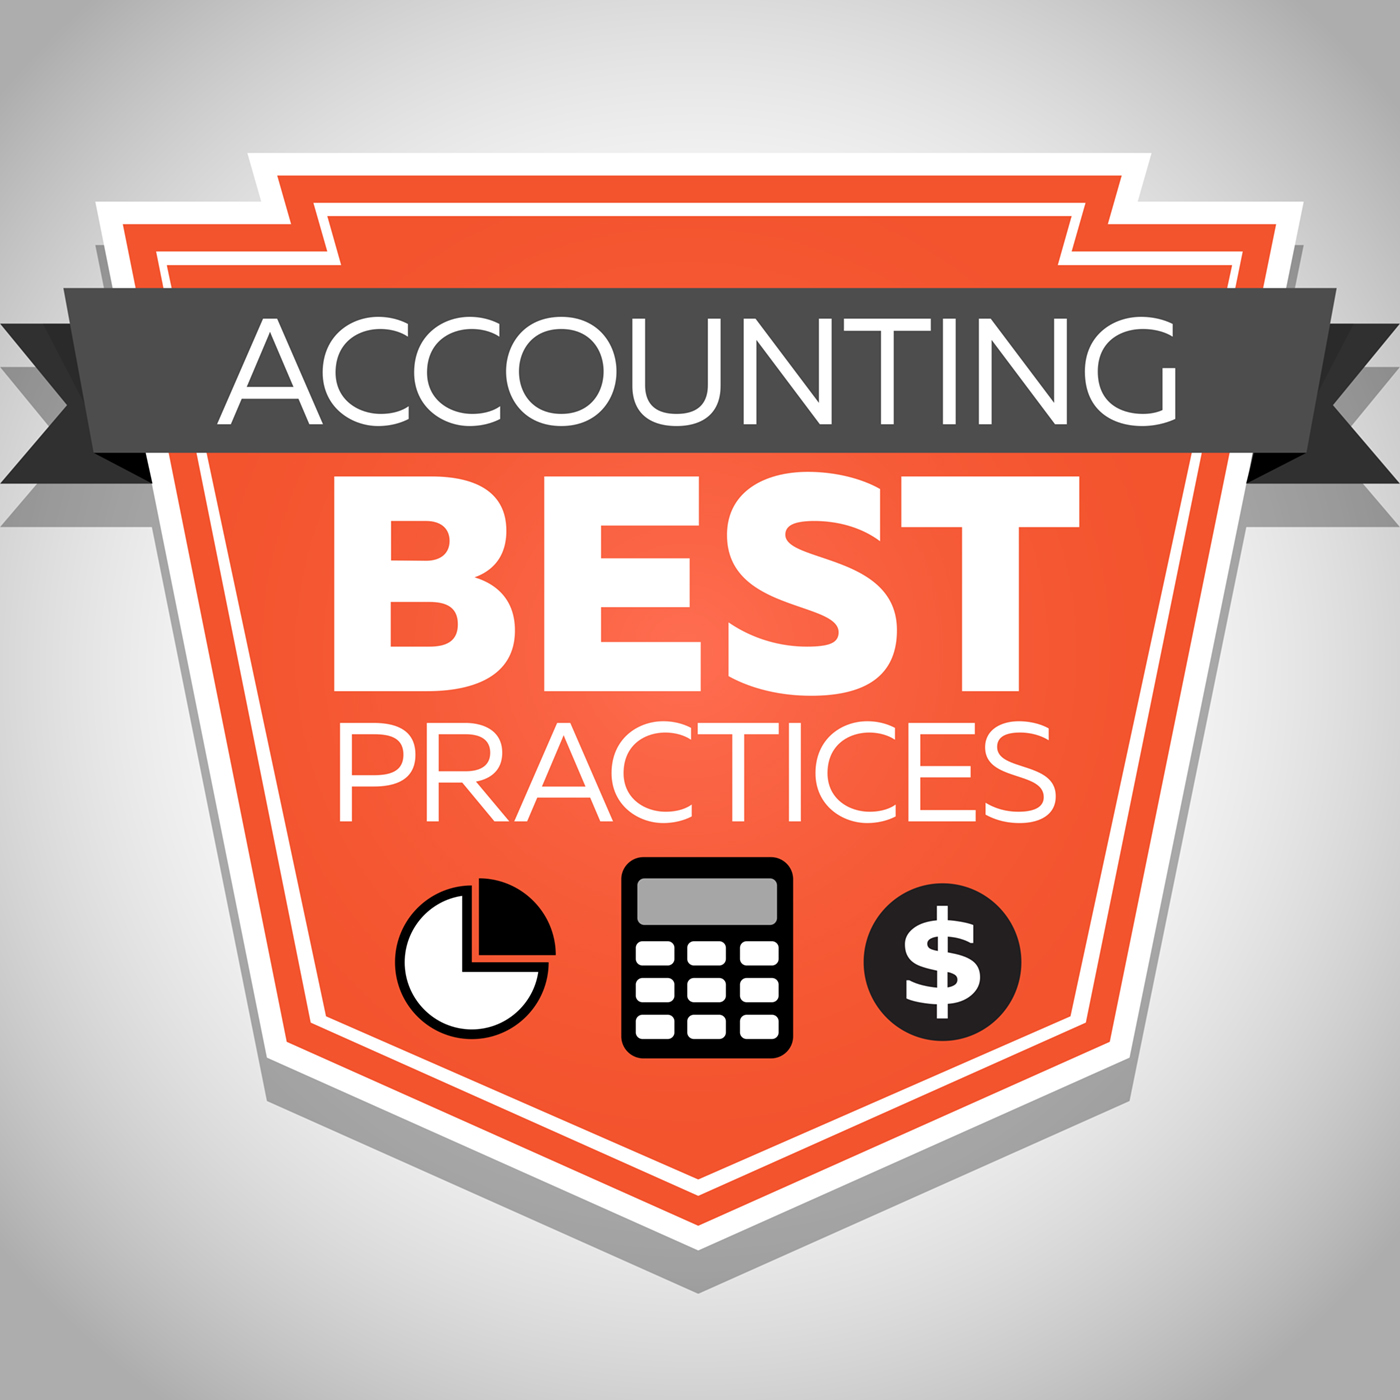 Accounting Best Practices with Steve Bragg by Steve Bragg on Apple Podcasts